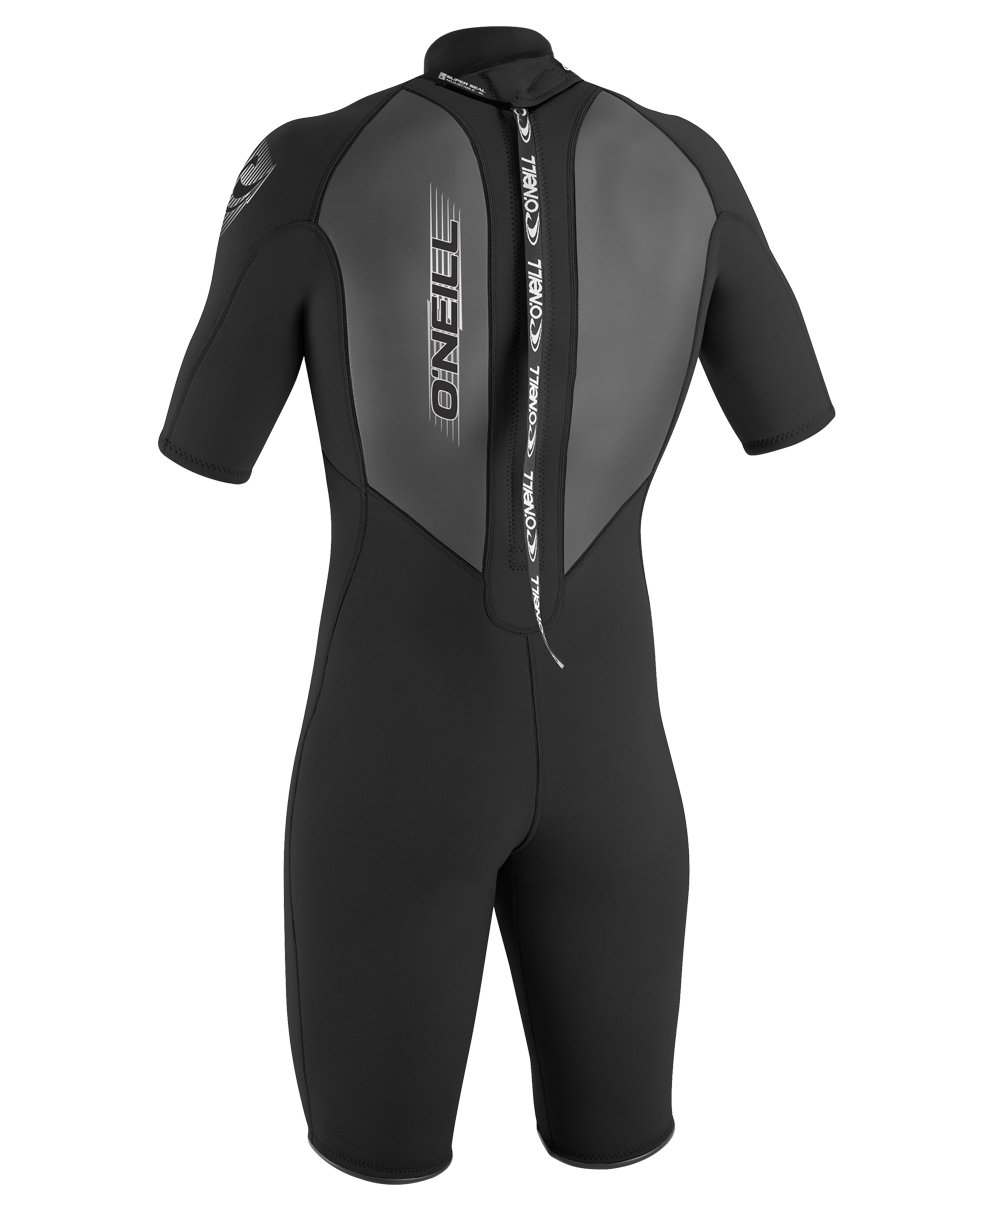 O'Neill Men's Reactor 2mm Back Zip Spring Wetsuit, Black, XX-Large by O'Neill Wetsuits (Image #3)